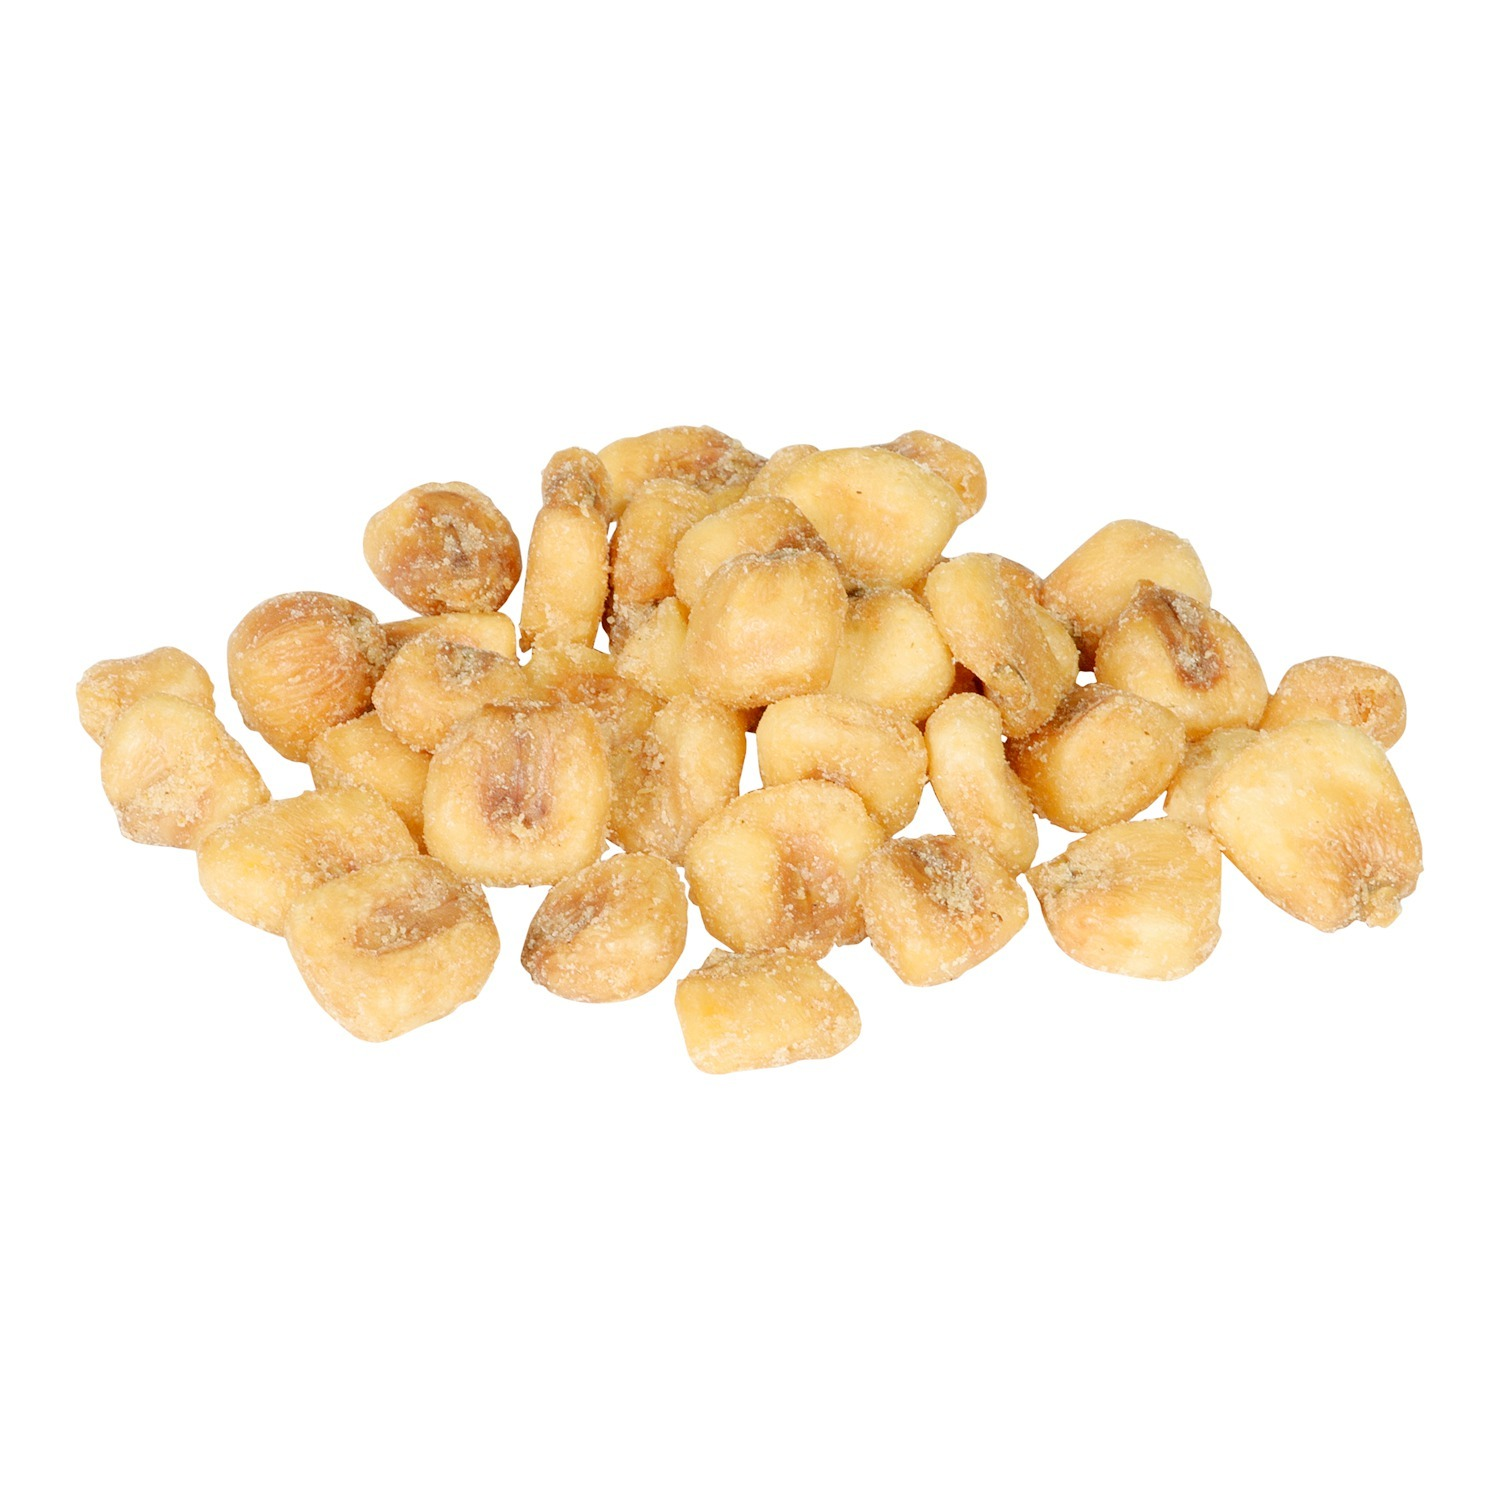 CORN NUTS Snacks Jalapeno/Cheddar 25lb